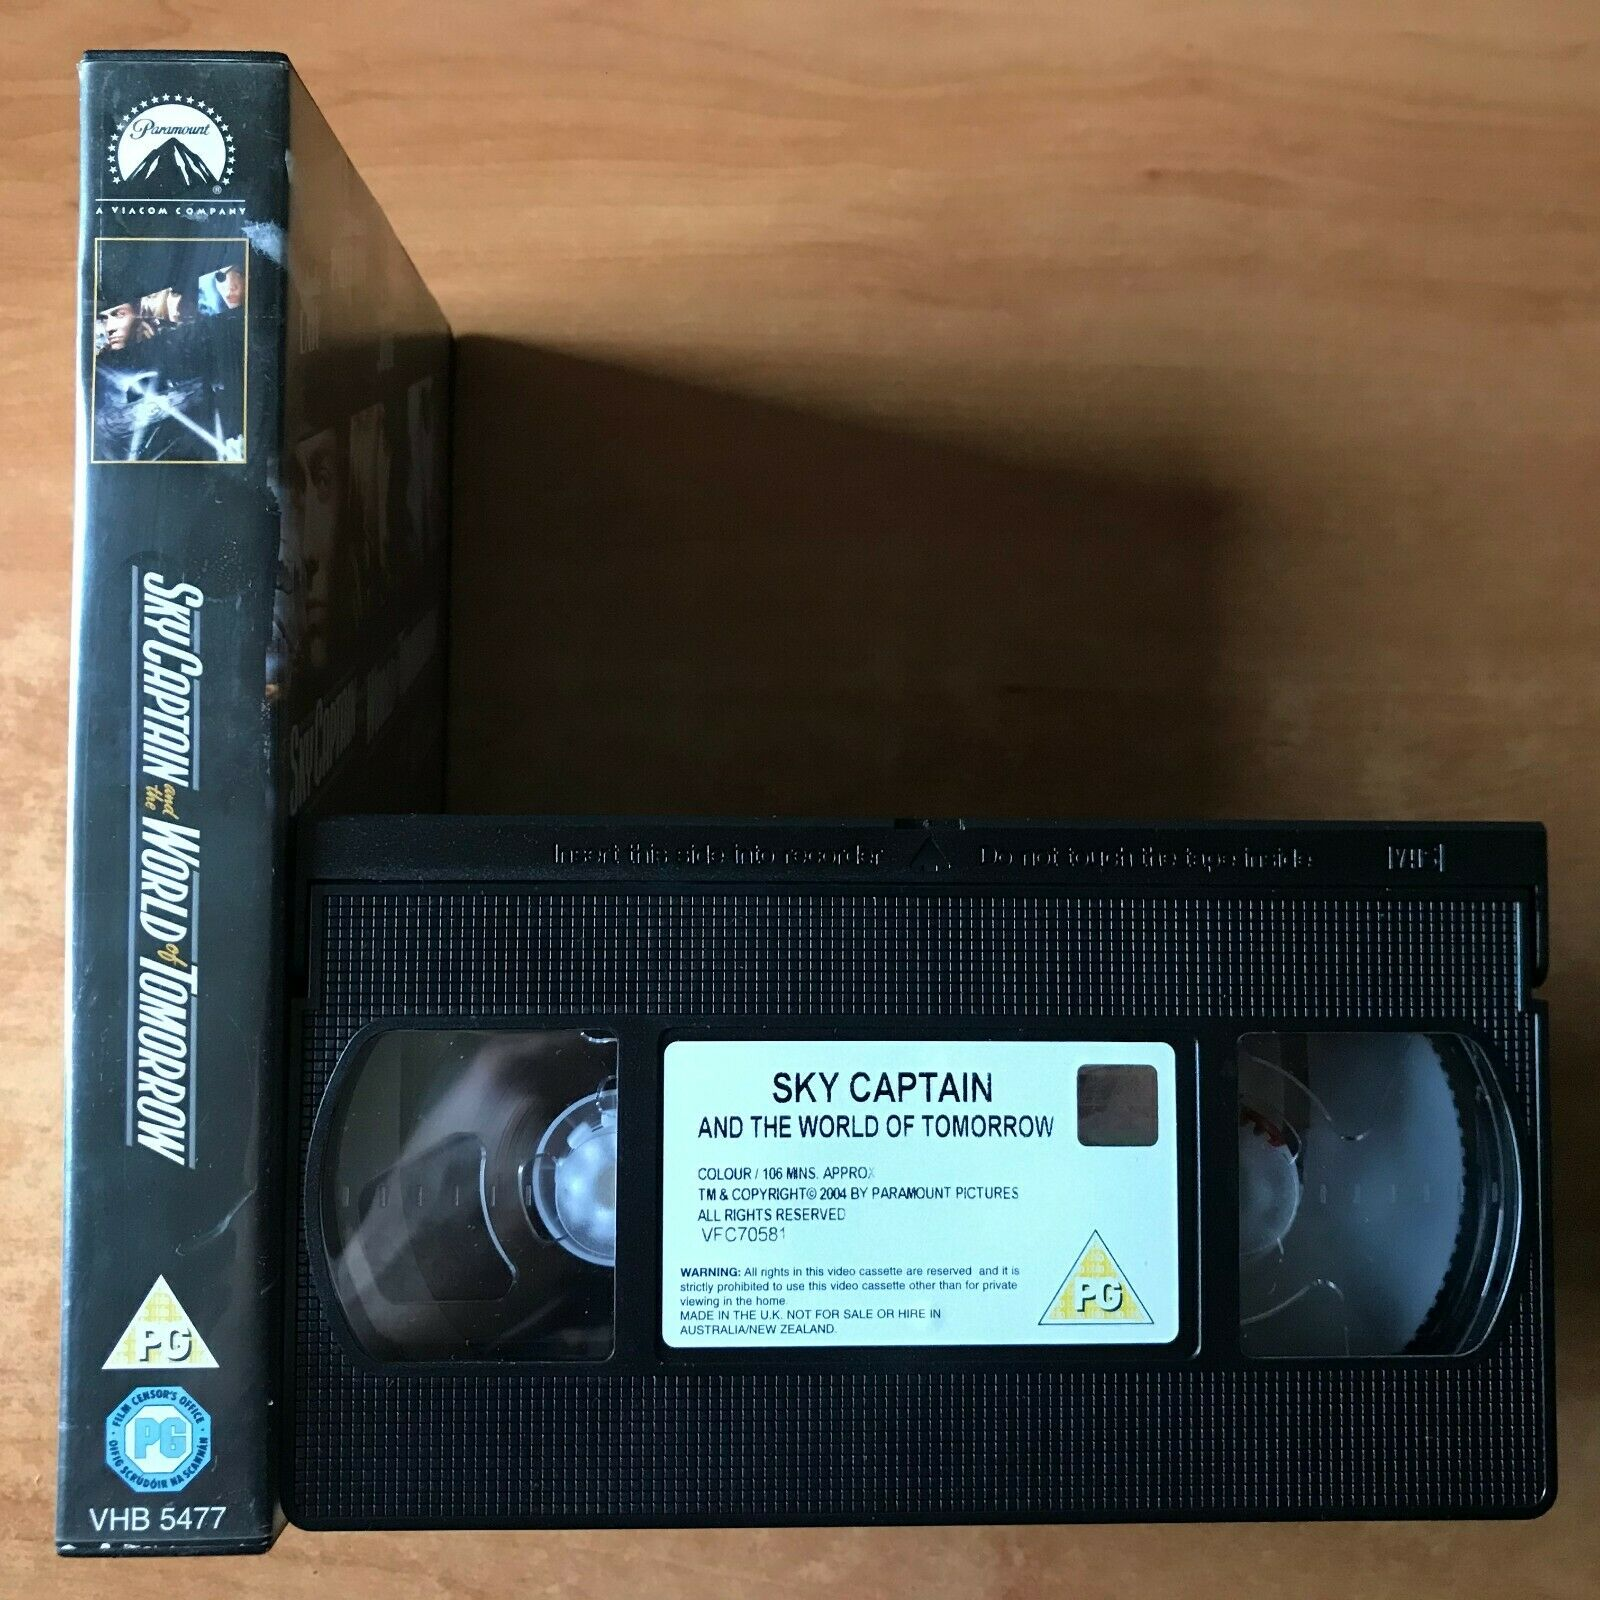 Sky Captain And The World Of Tomorrow: Sci-Fi Action [Large Box] Rental - VHS